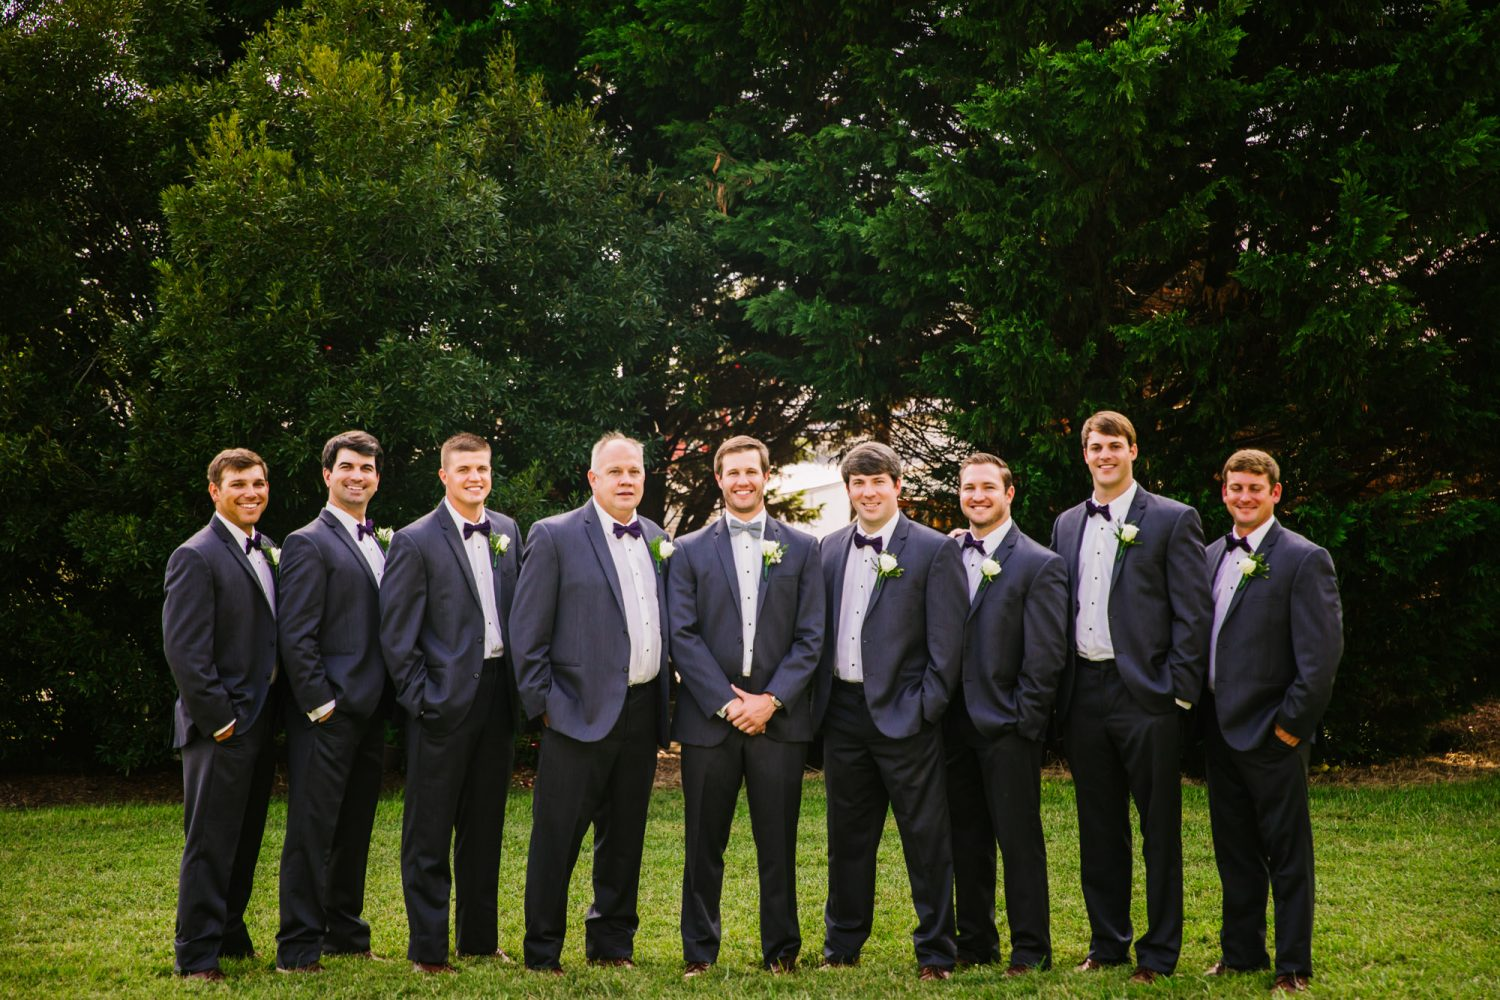 Waynesville, NC Wedding Photography | Groomsmen Portrait